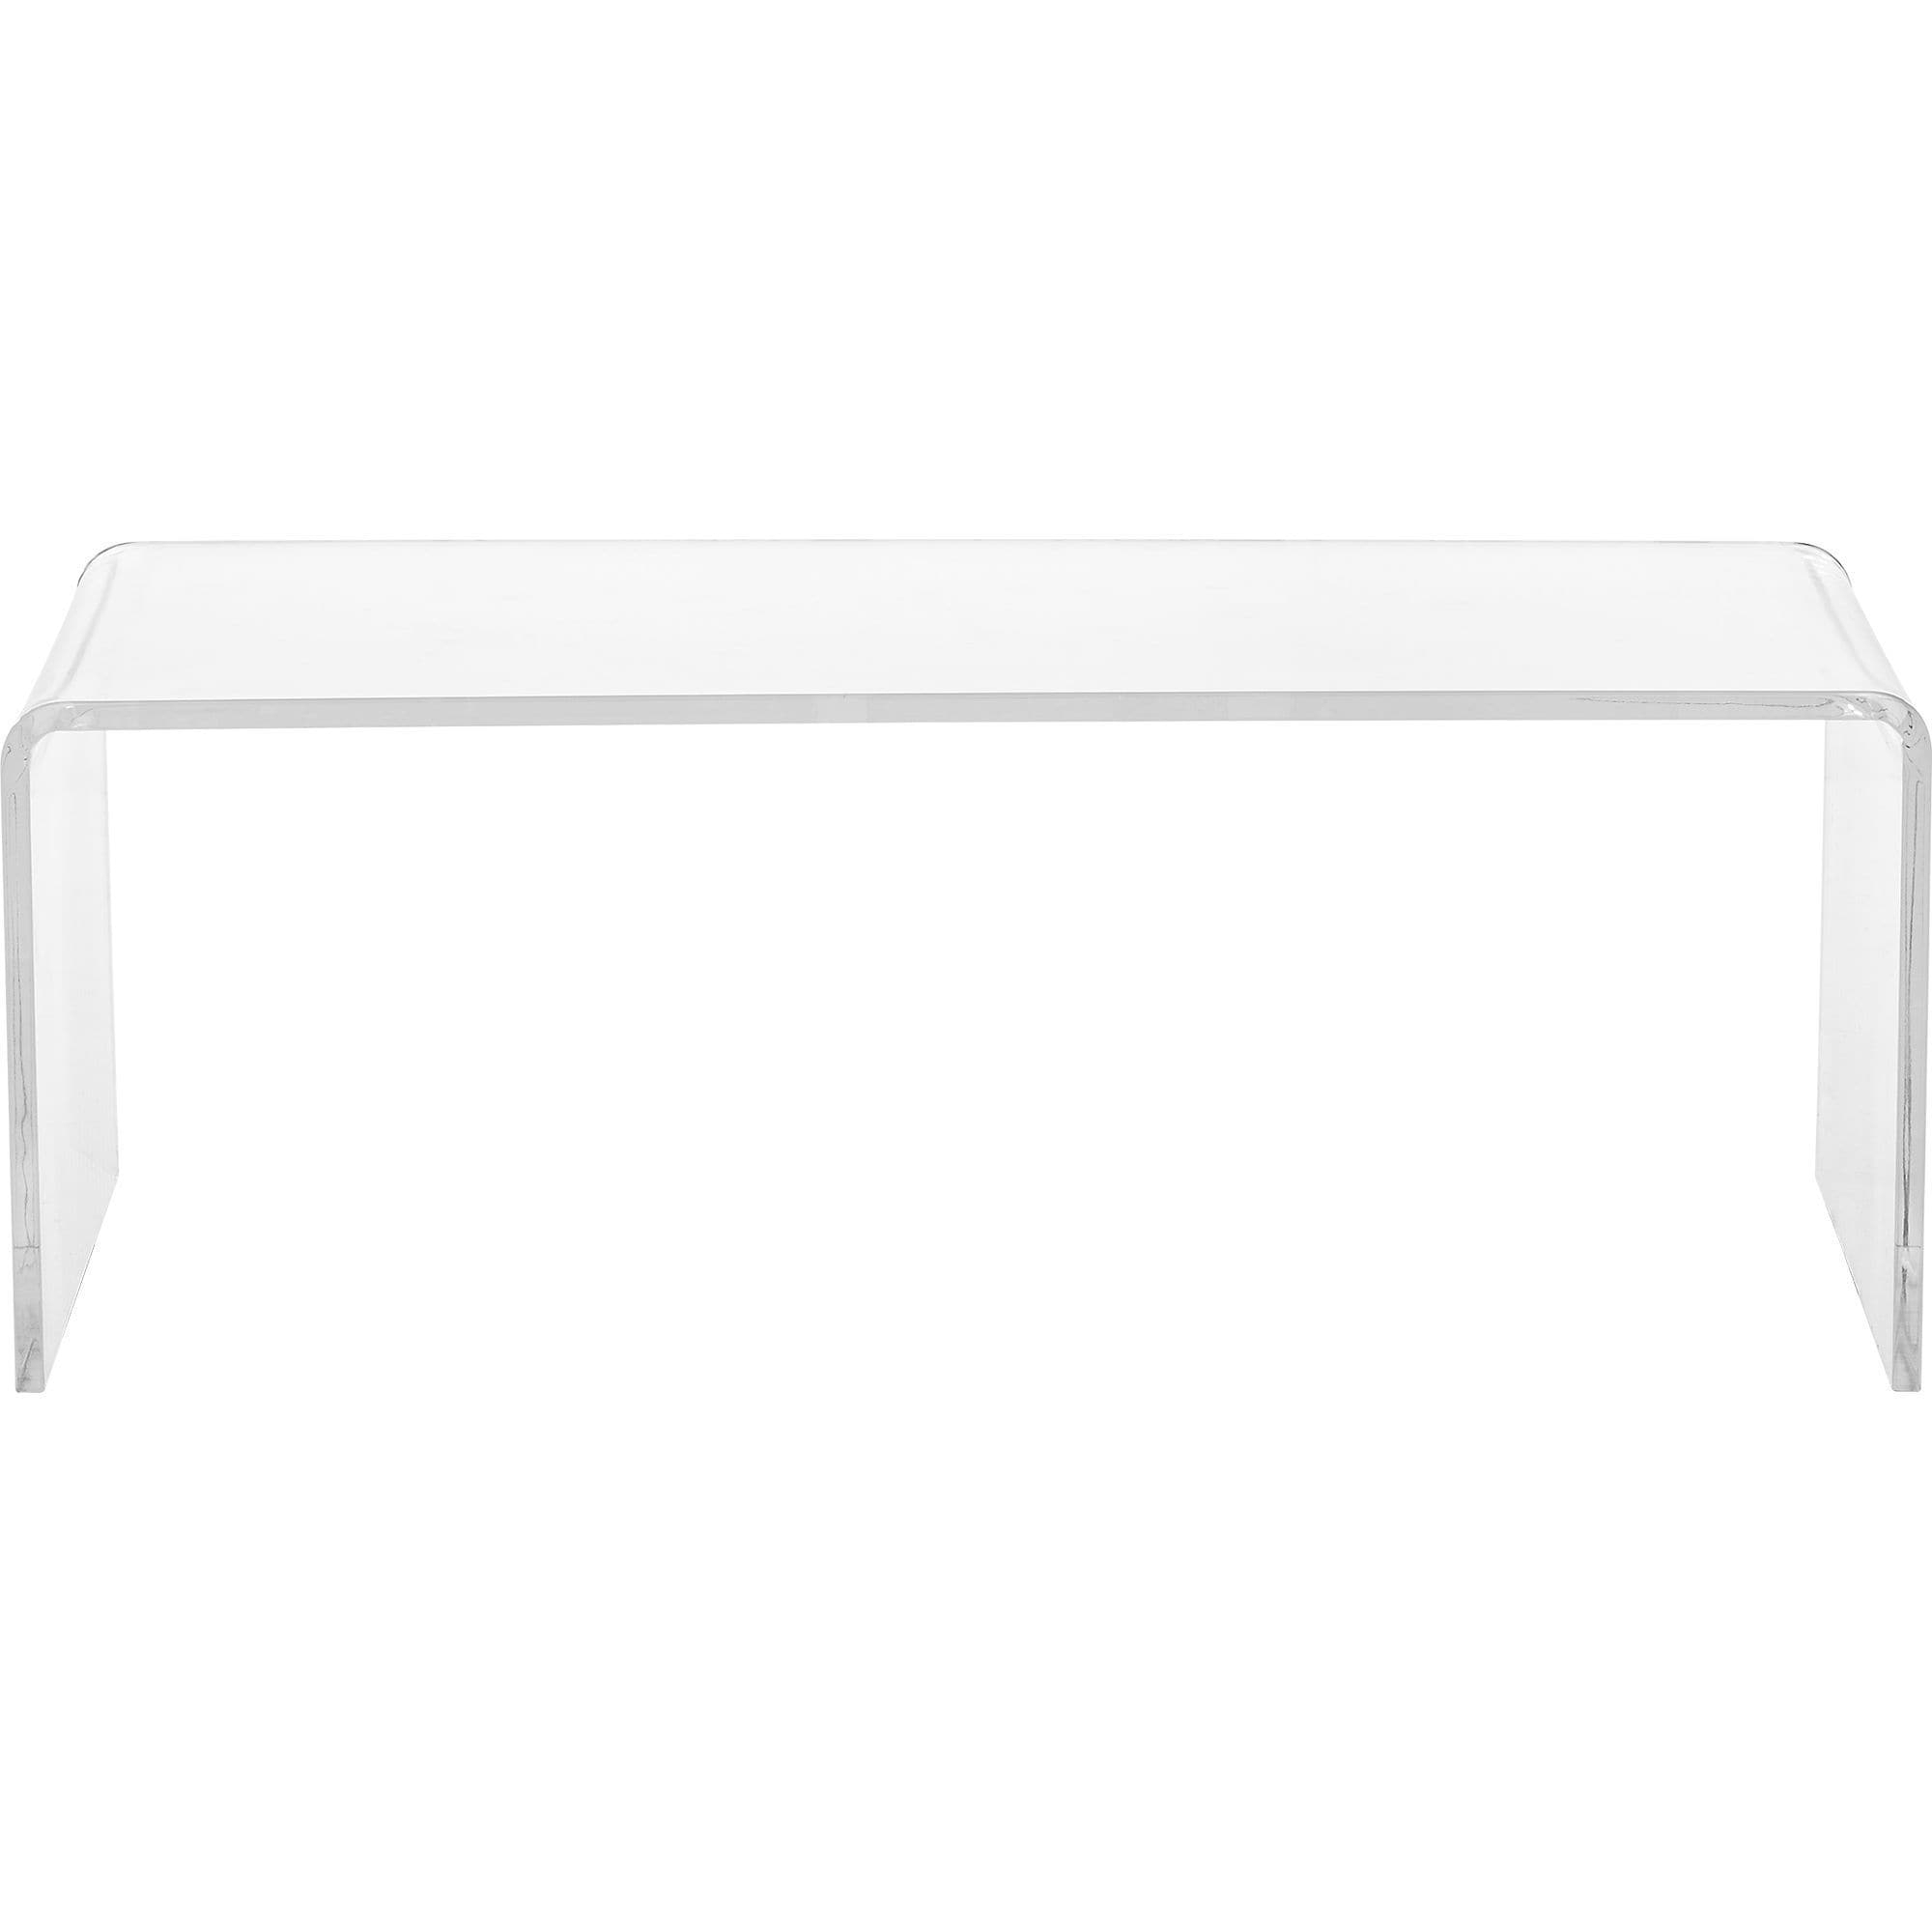 Shop Clear Acrylic Coffee Table - On Sale - Free Shipping Today regarding Peekaboo Acrylic Coffee Tables (Image 27 of 30)